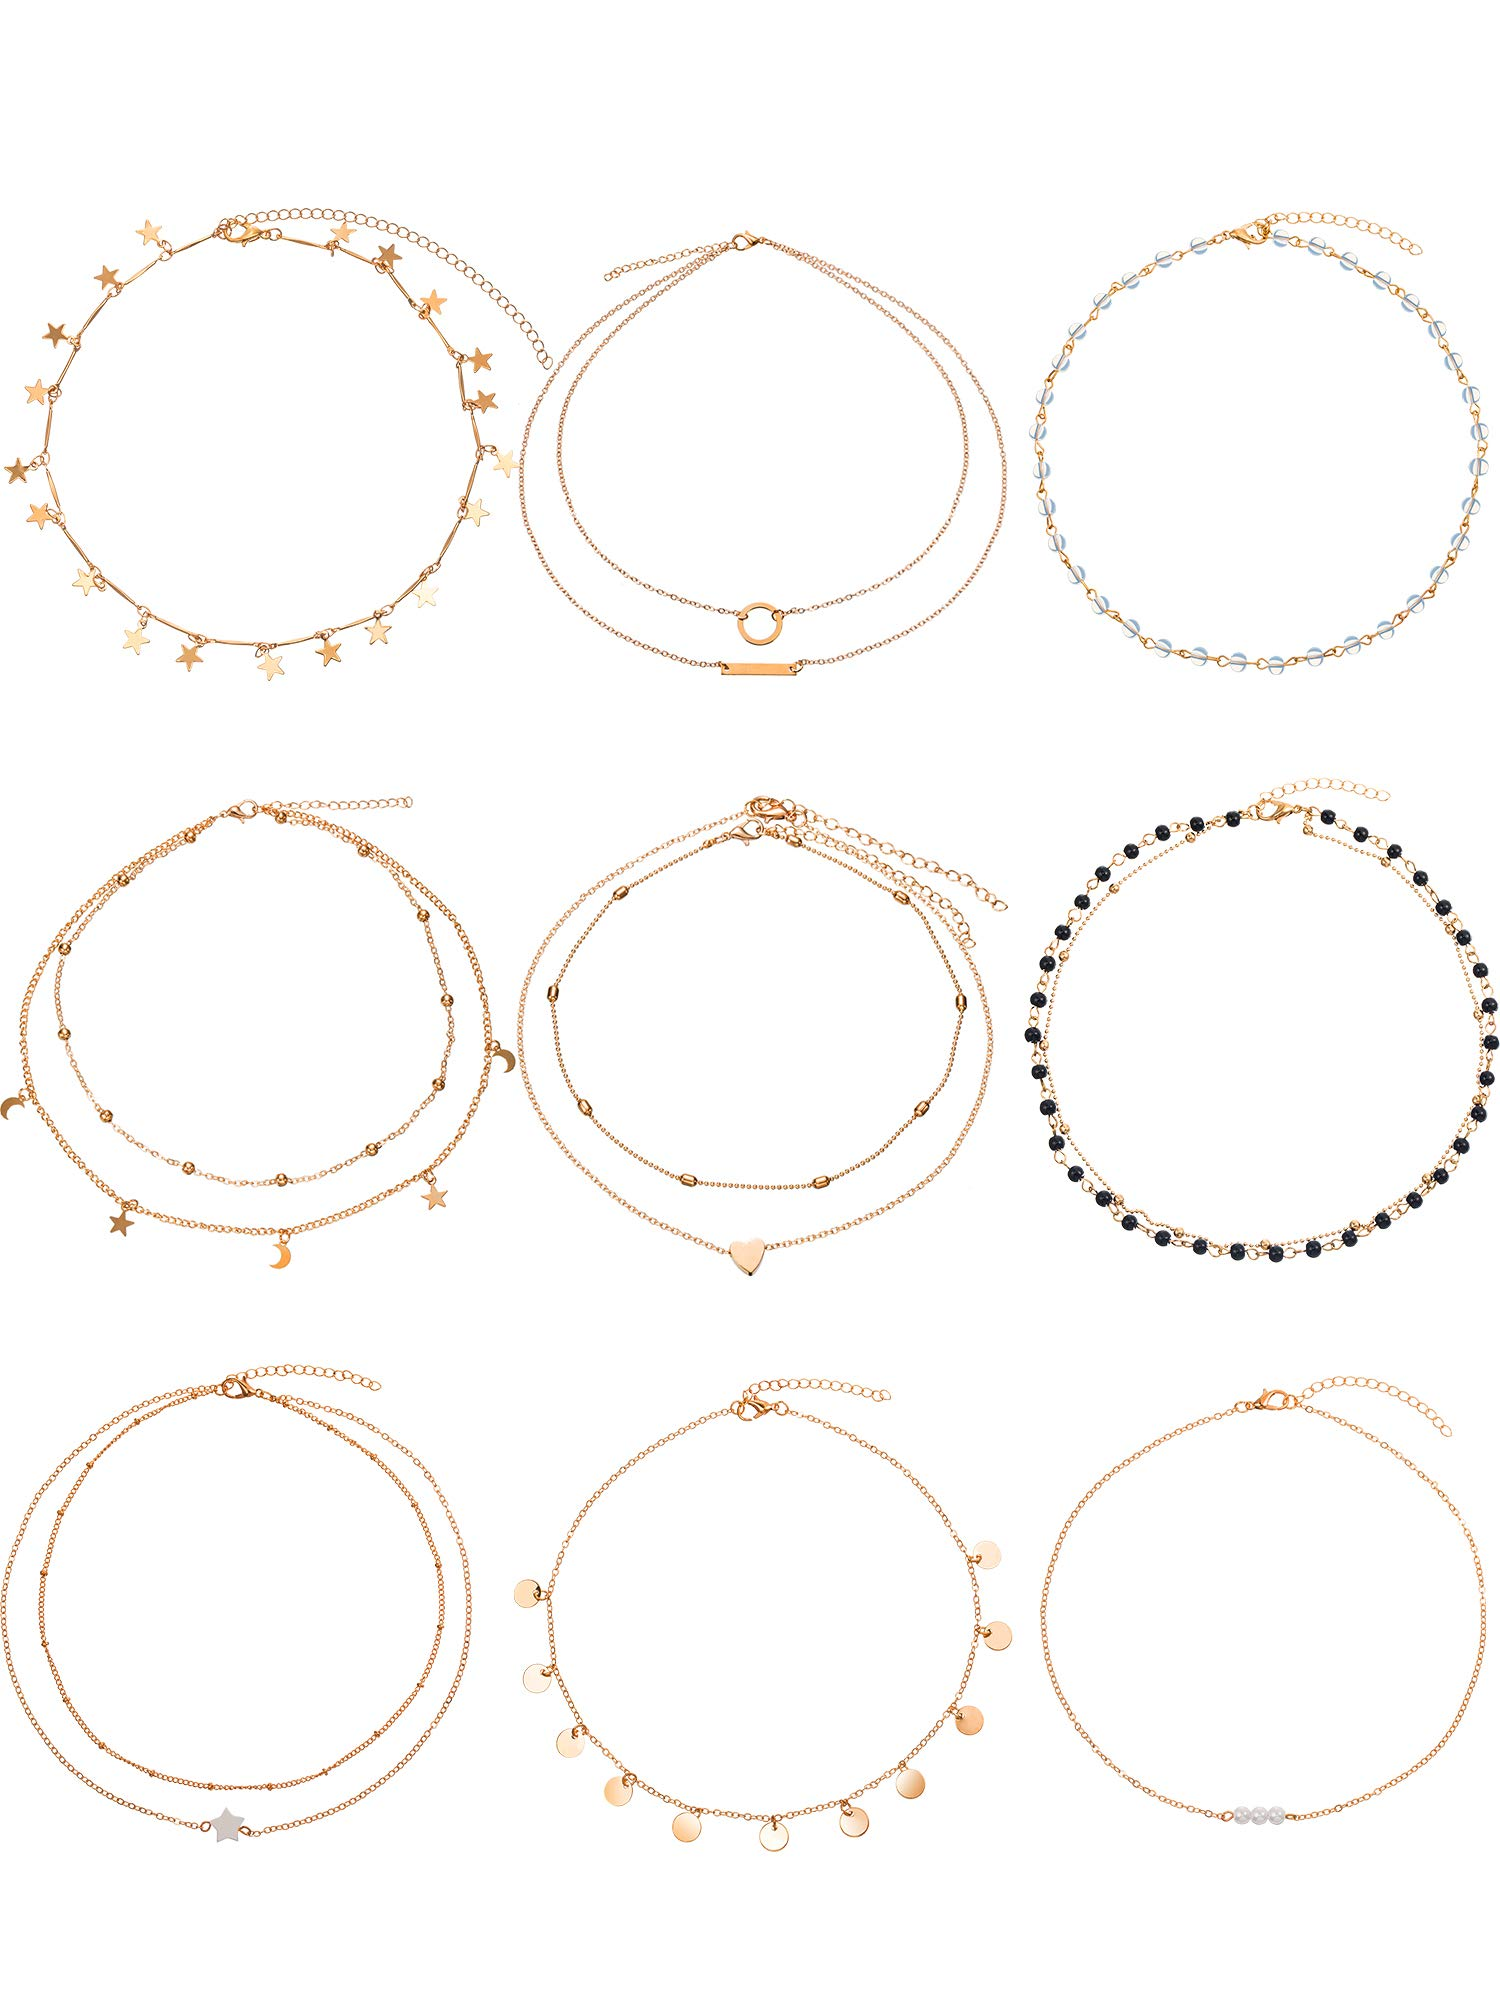 BBTO 9 Pieces Gold Layering Chain Choker Necklace Layered Pendant Statement Necklace Women Girls (Style A)